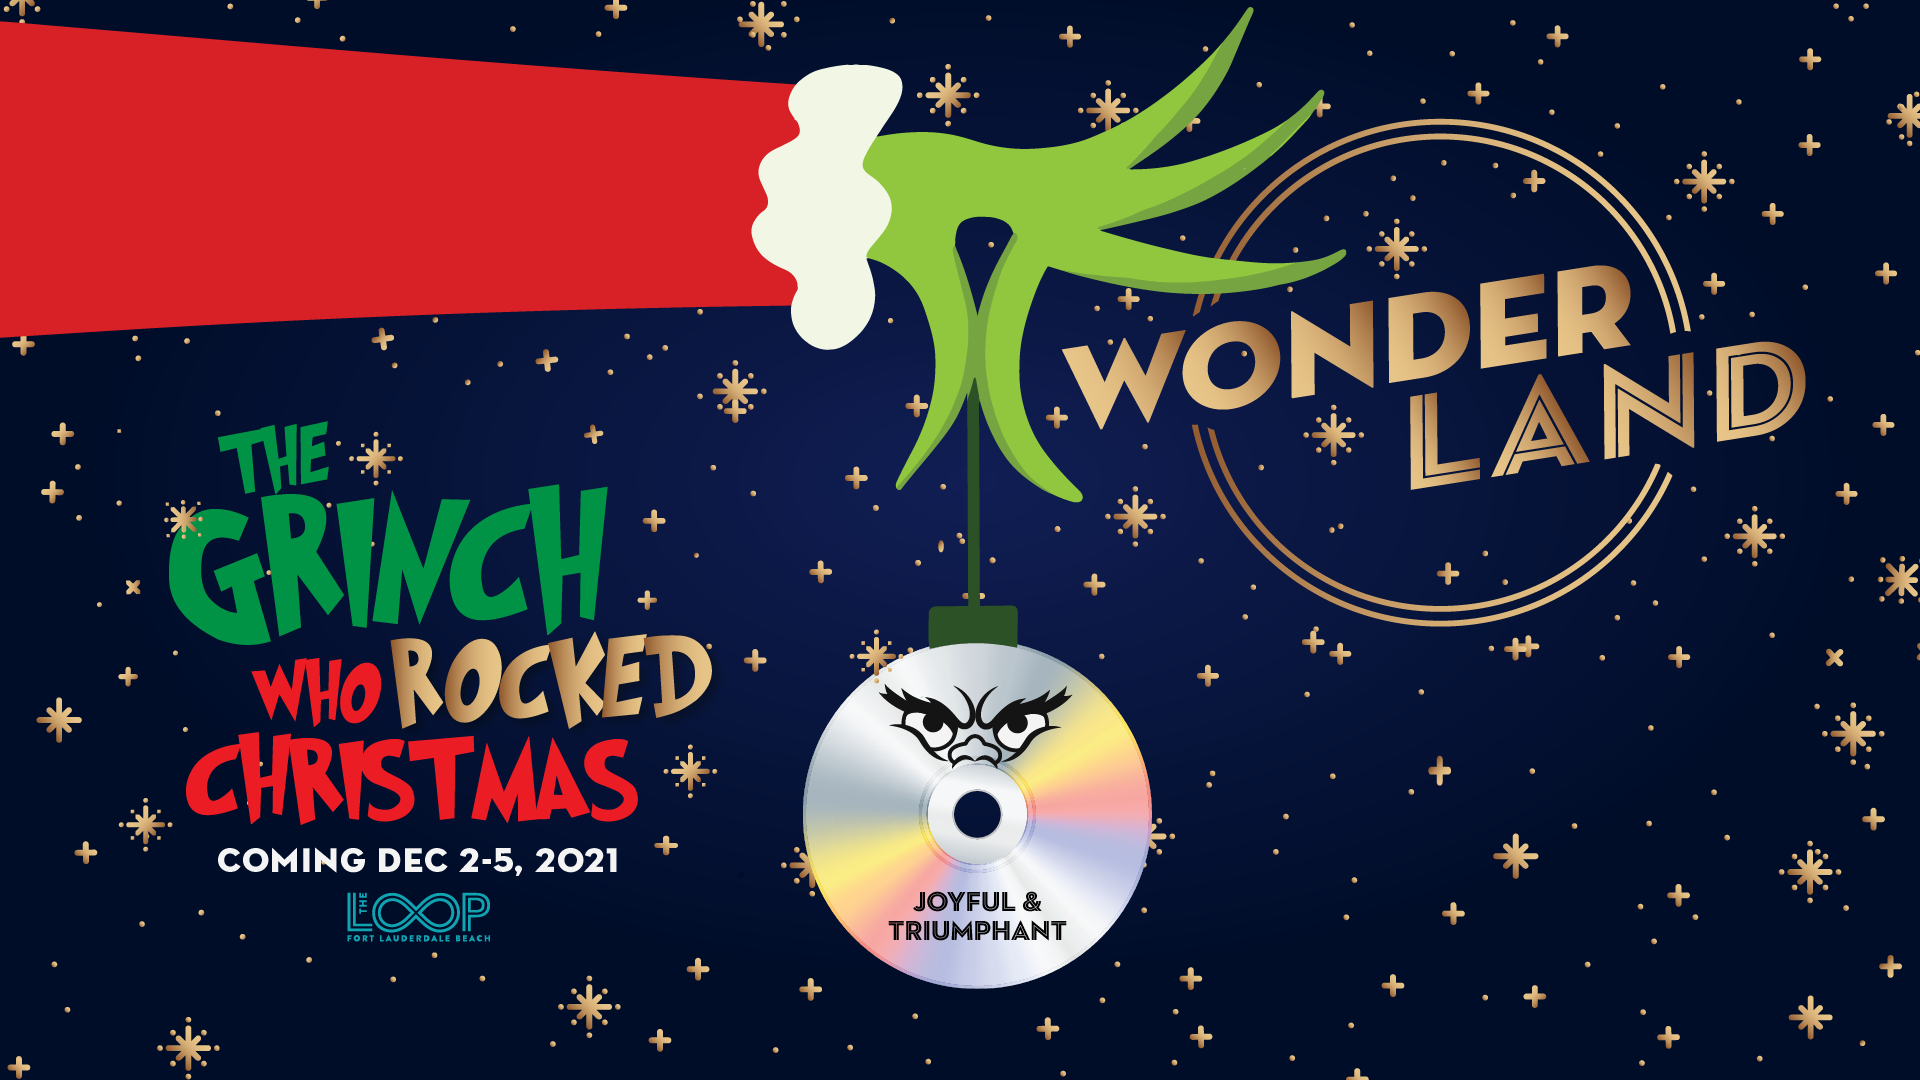 The Grinch Who Rocked Christmas